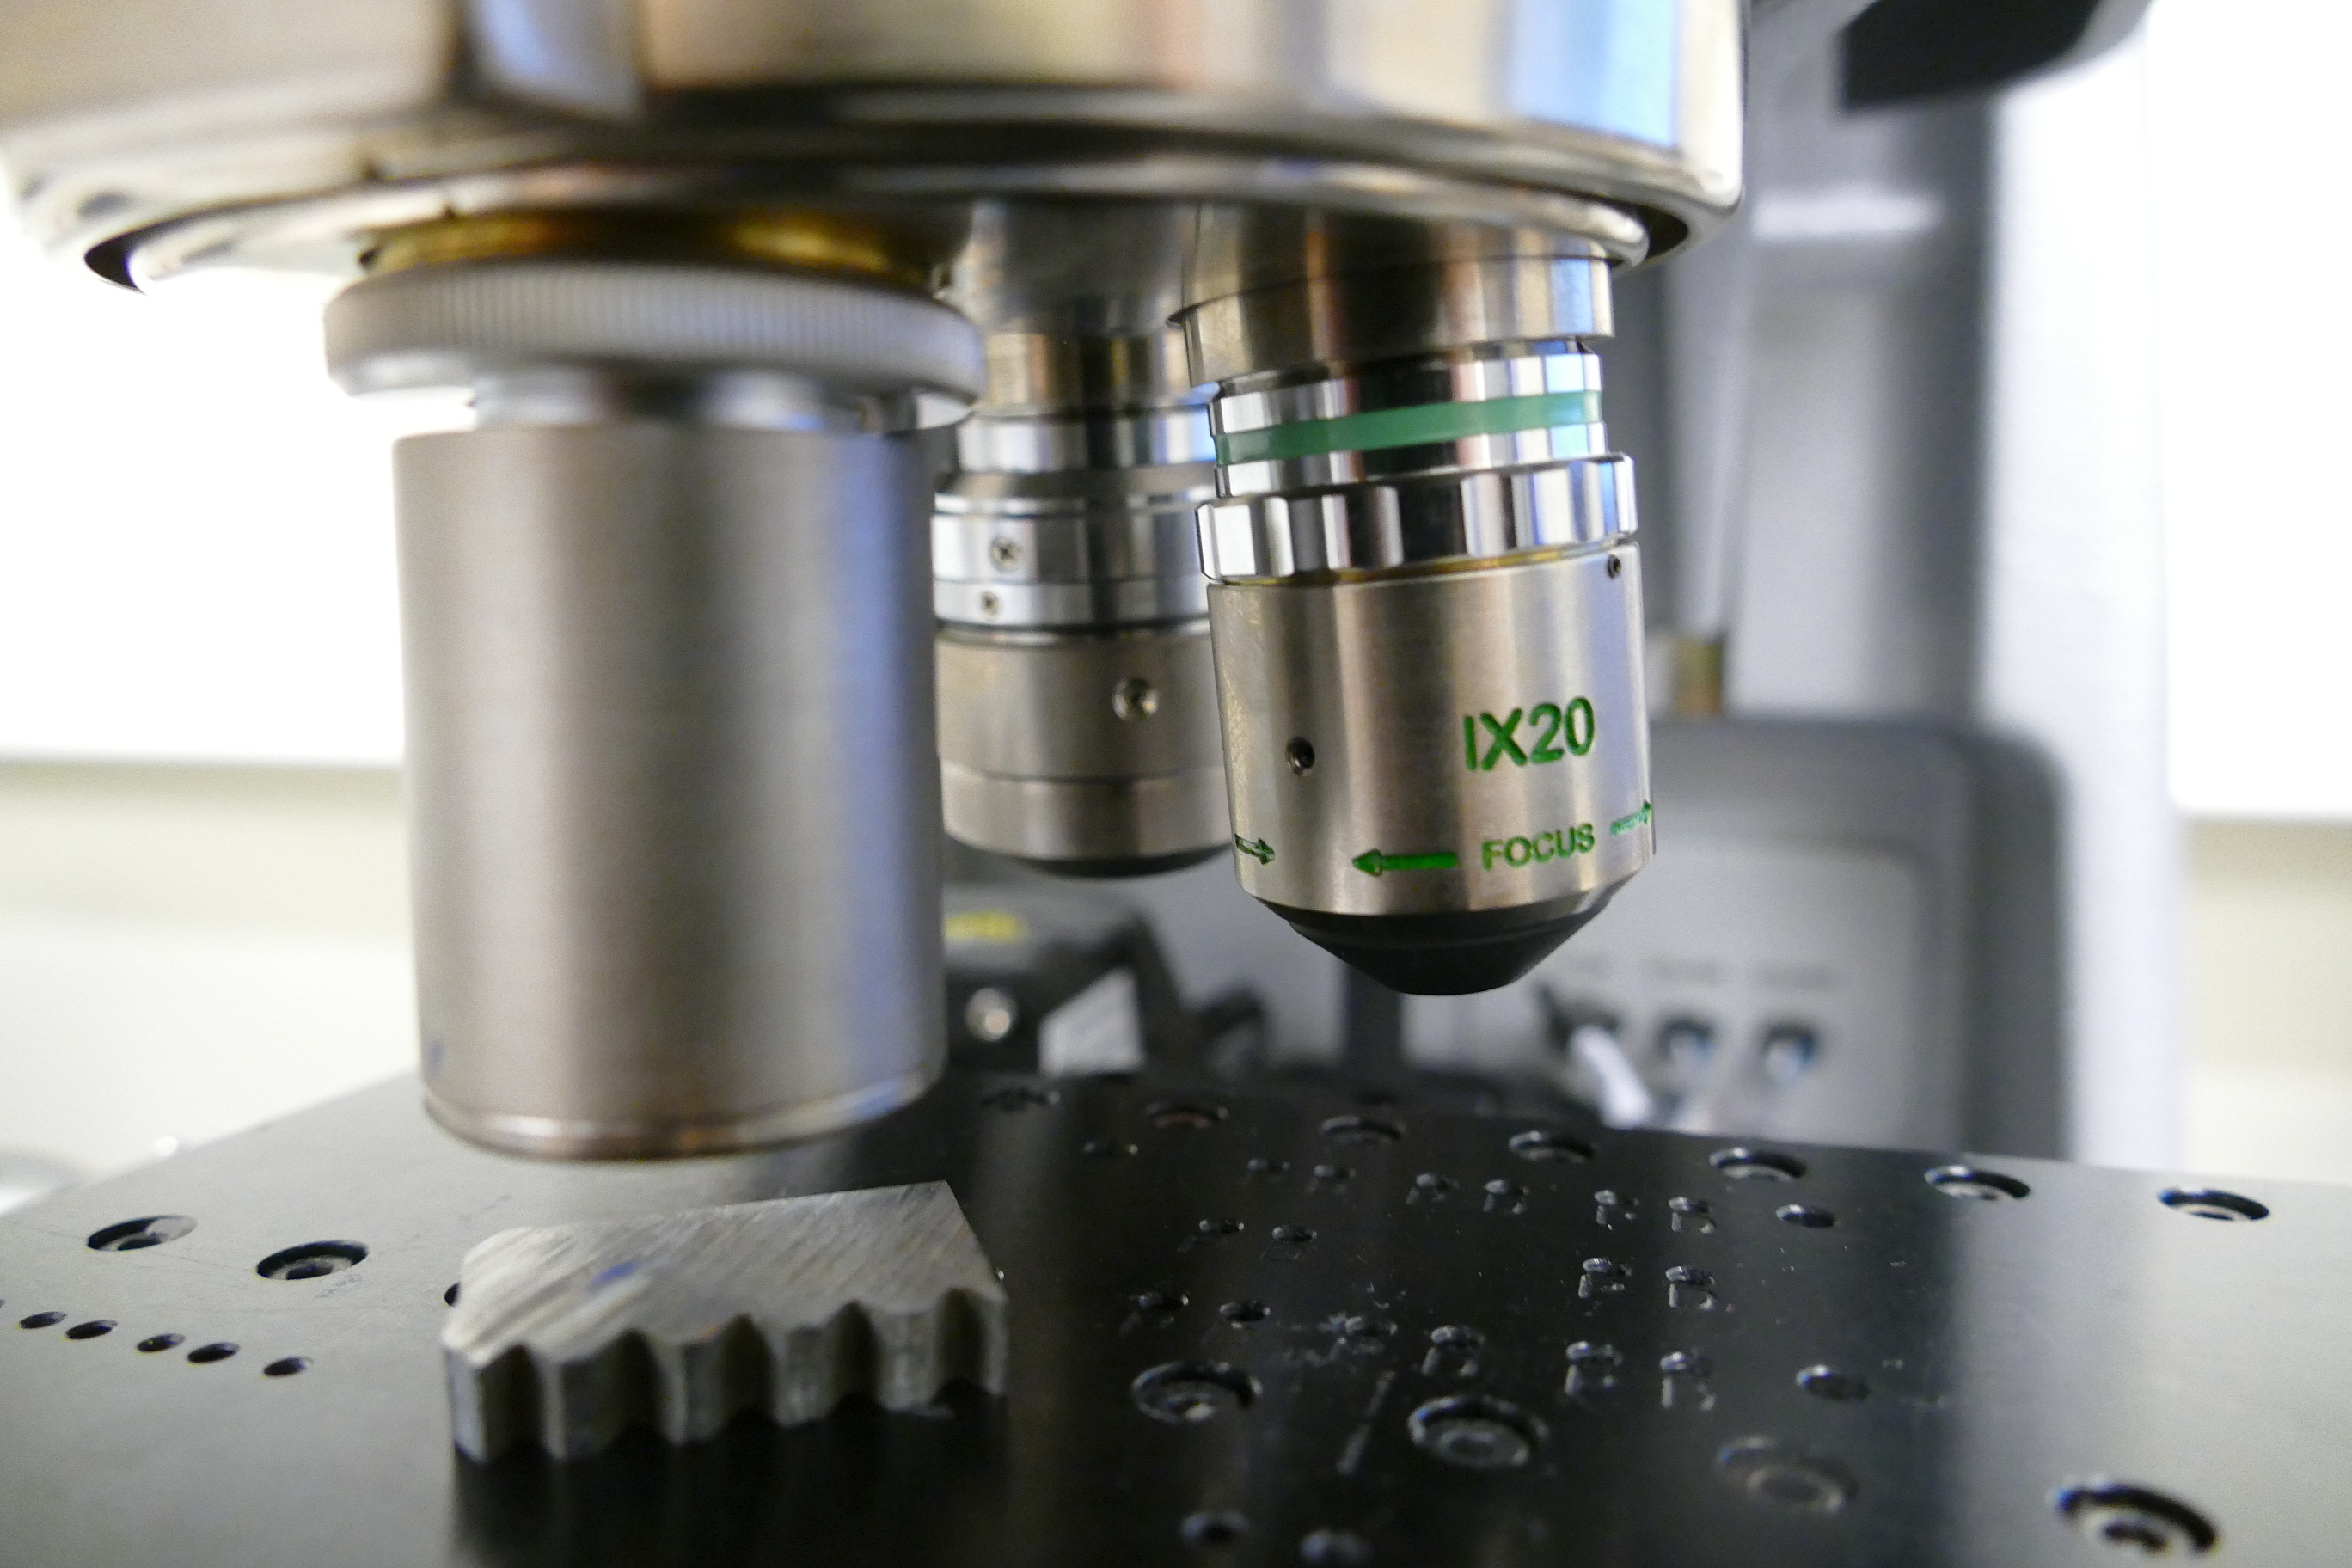 Materials characterisation using optical profilometry